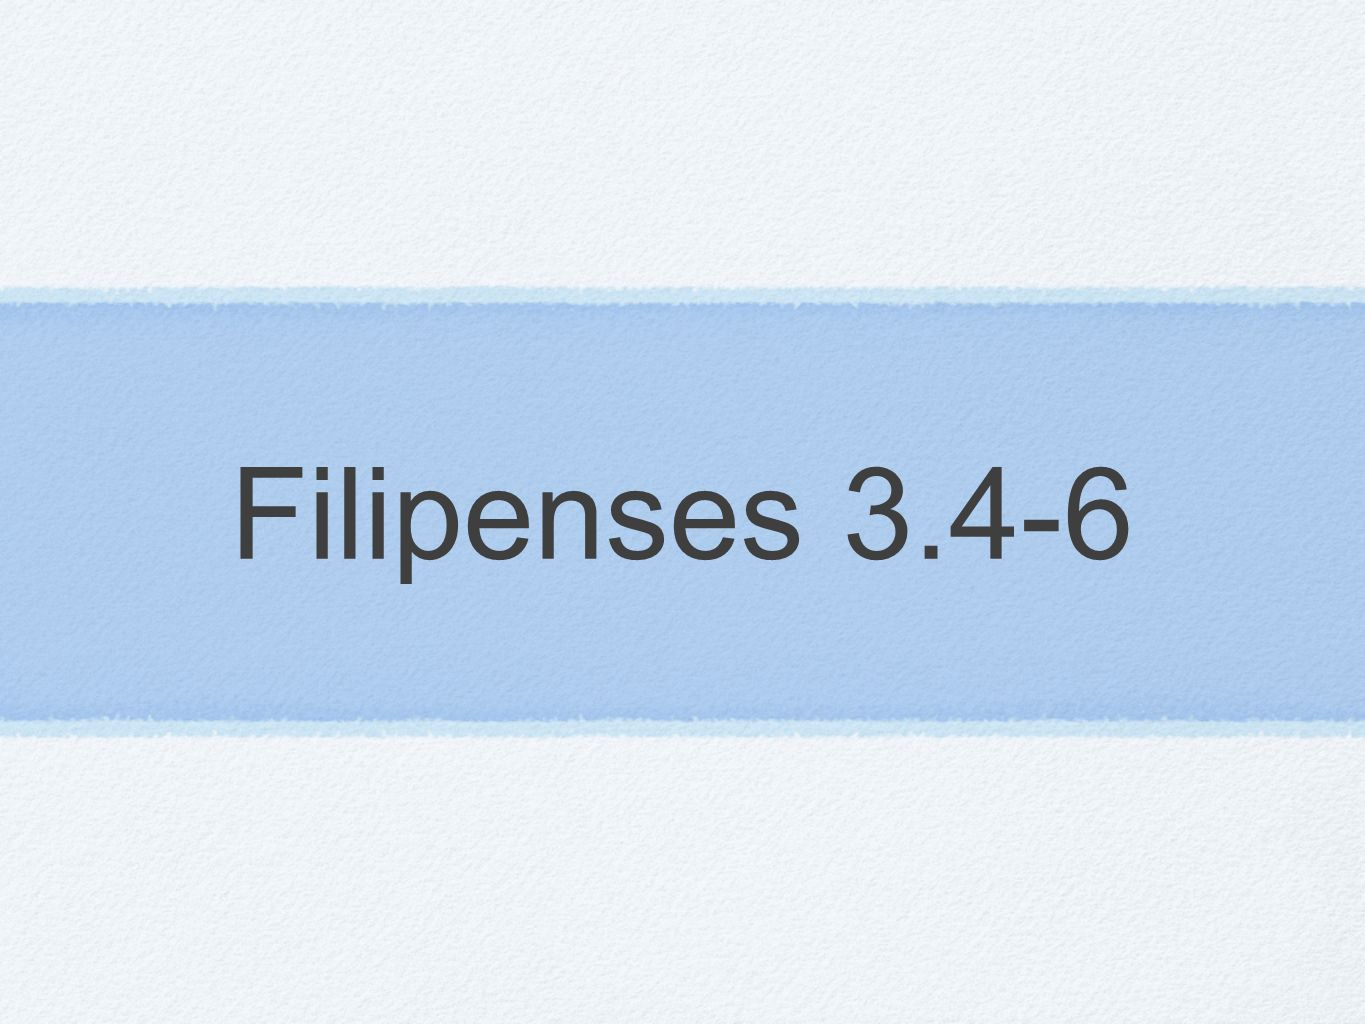 Filipenses 3.4-6